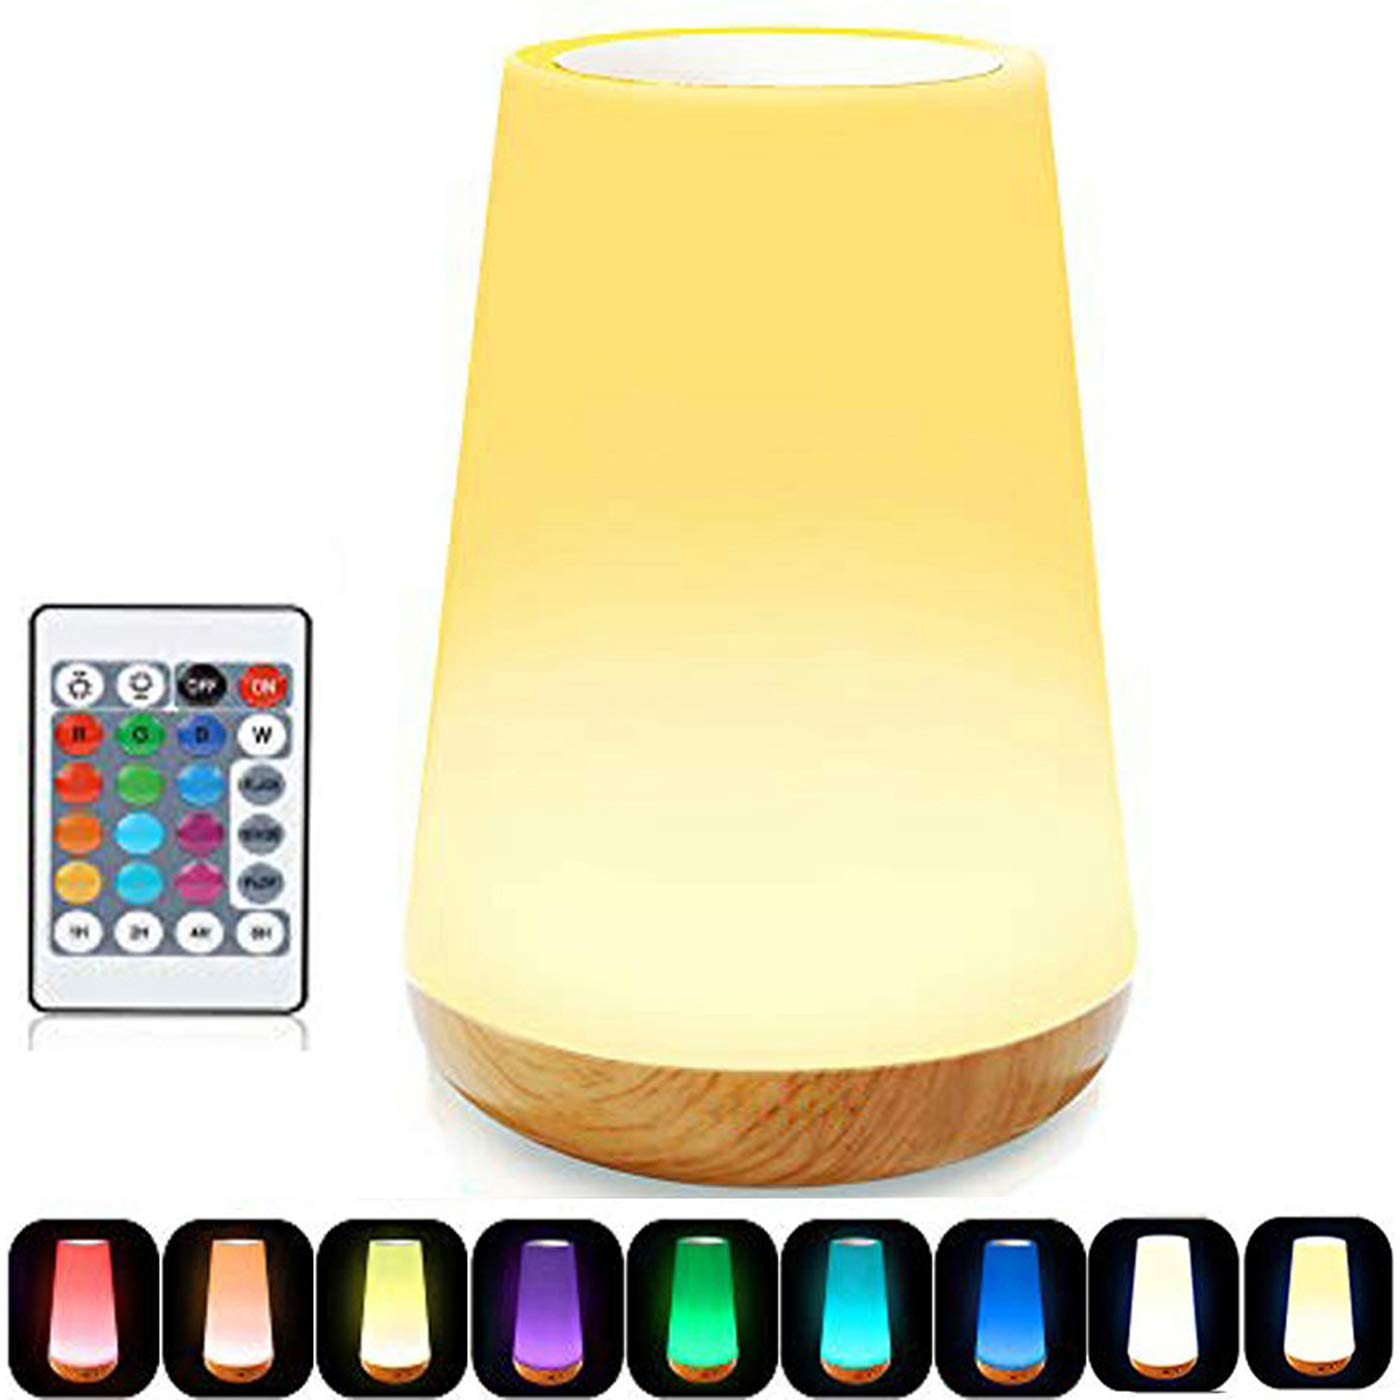 Caxmtu LED Night Light Touch Lamp Bedside Table Lamp for Kids Bedroom Rechargeable Dimmable with Remote Control and Timing Function Warm White Light + RGB Color Changing